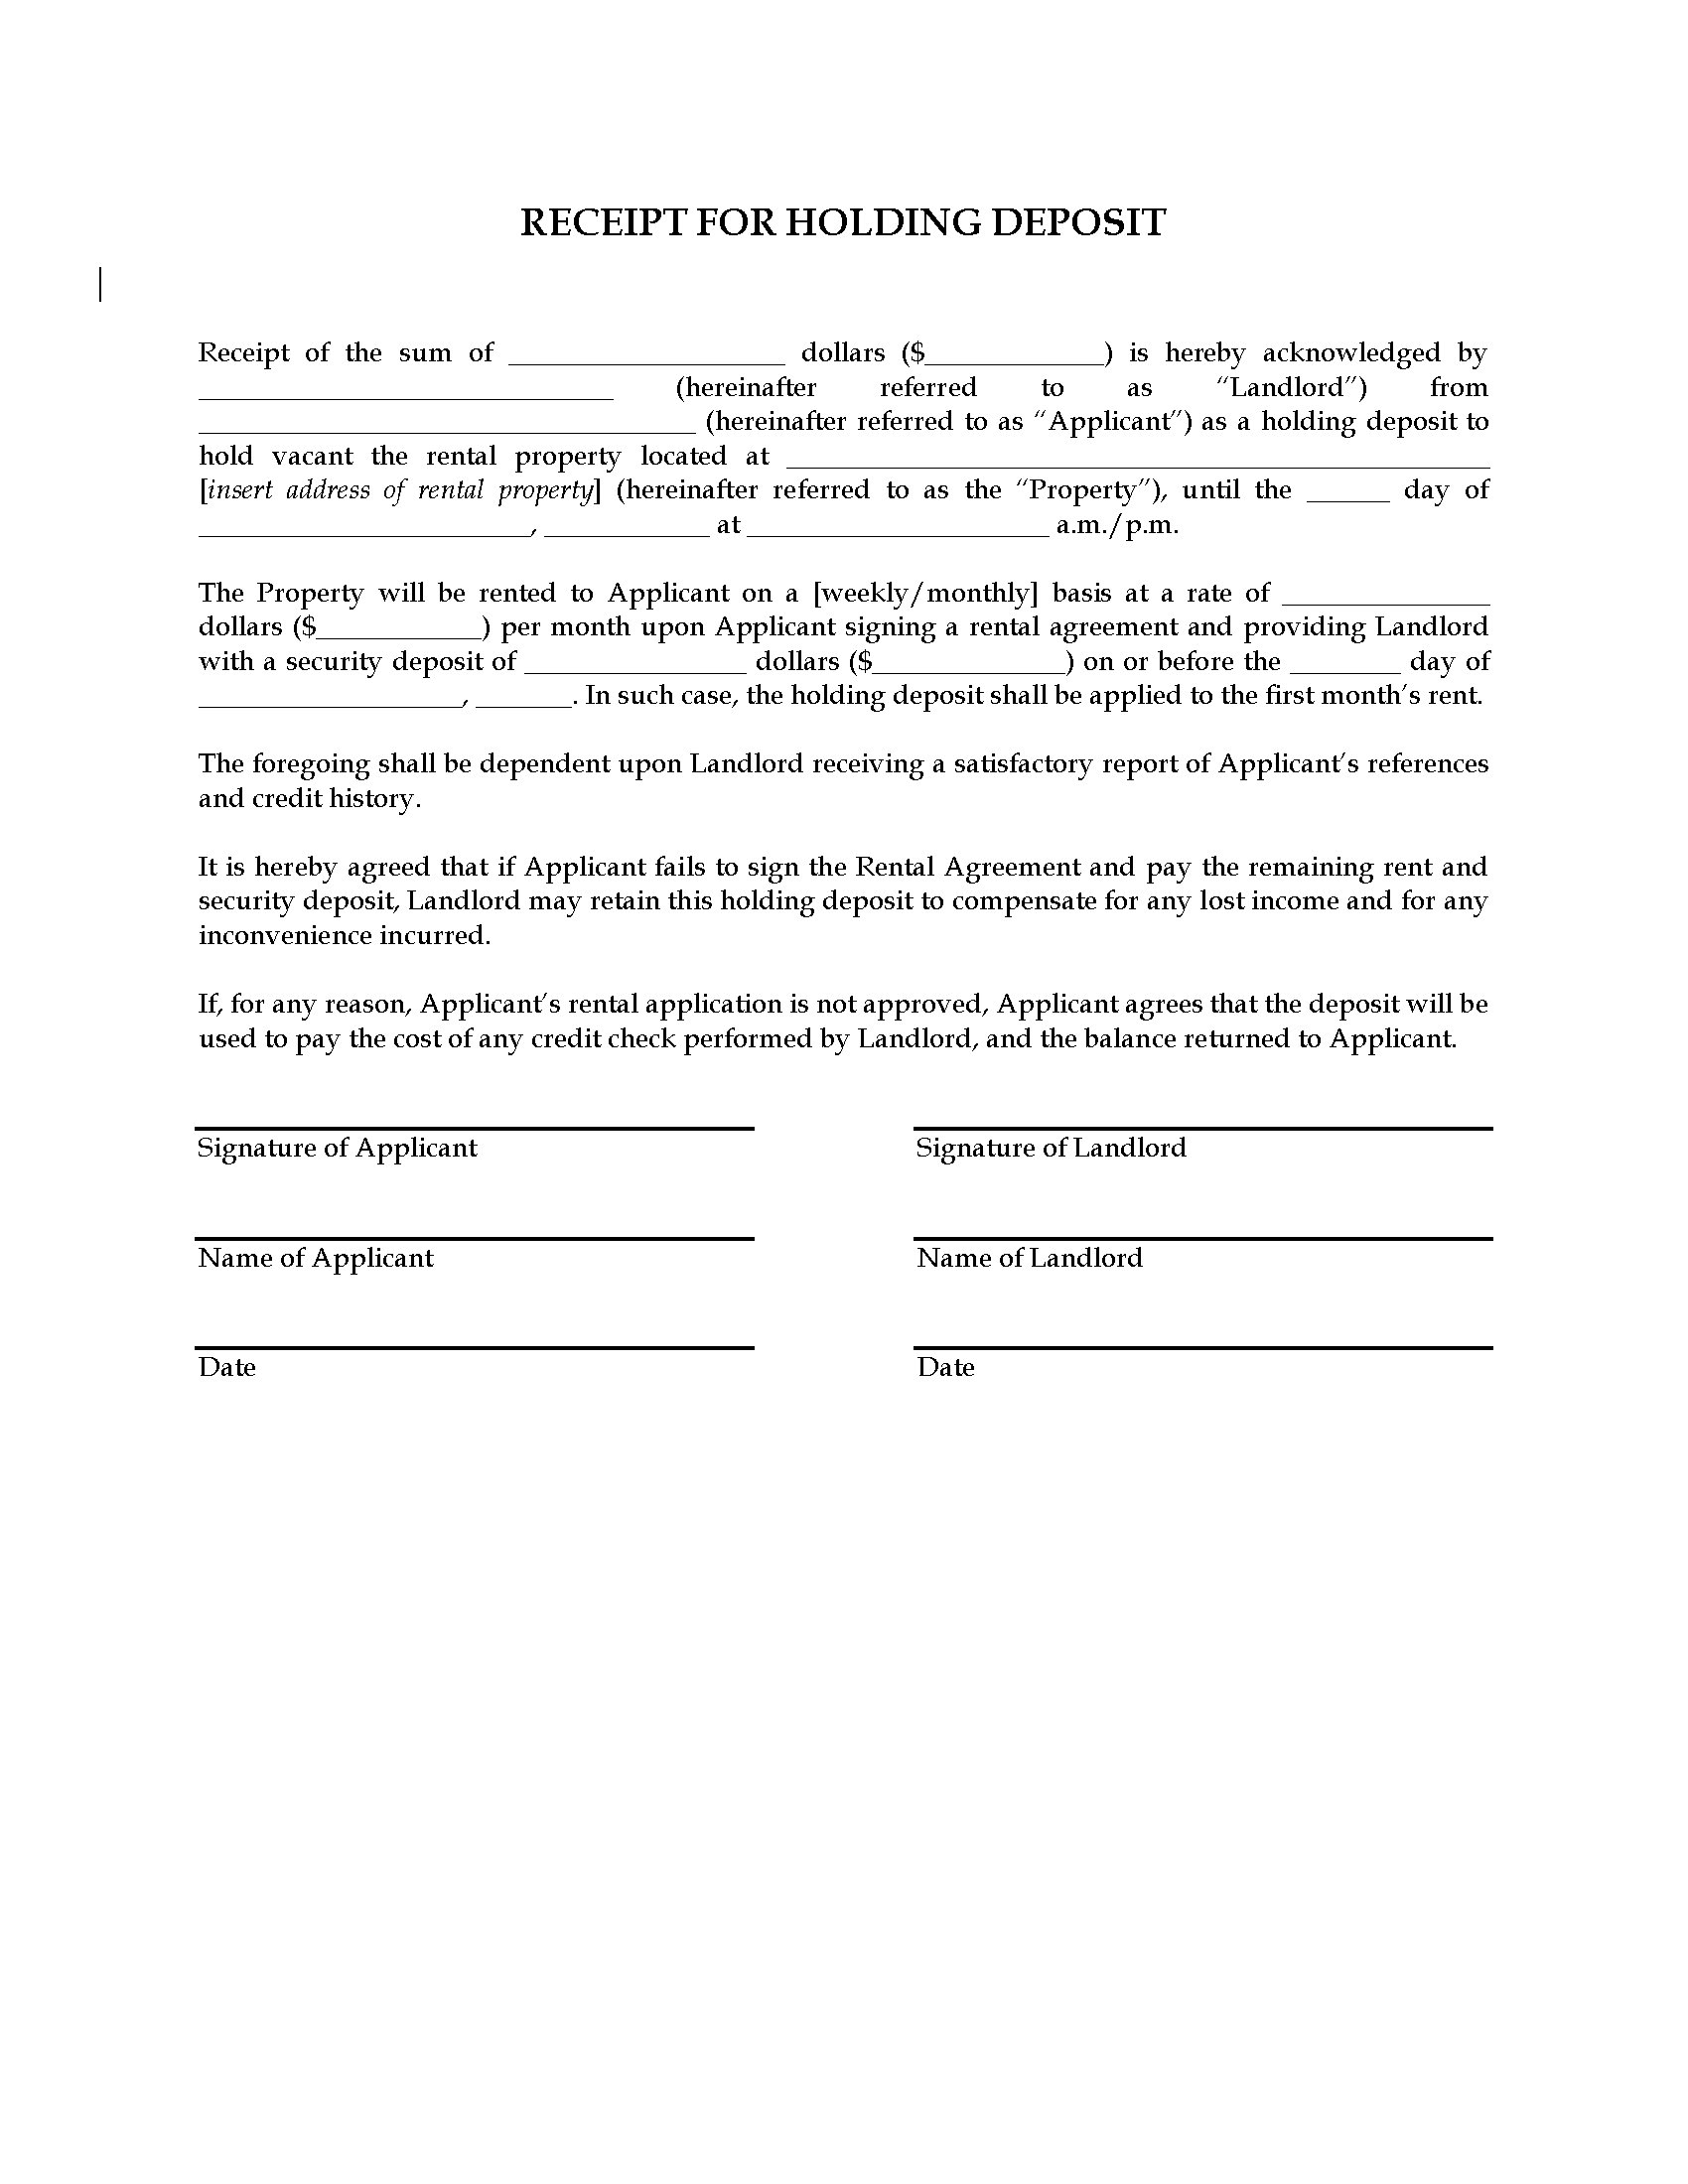 Receipt for Holding Deposit on Rental Property | Legal Forms and ...